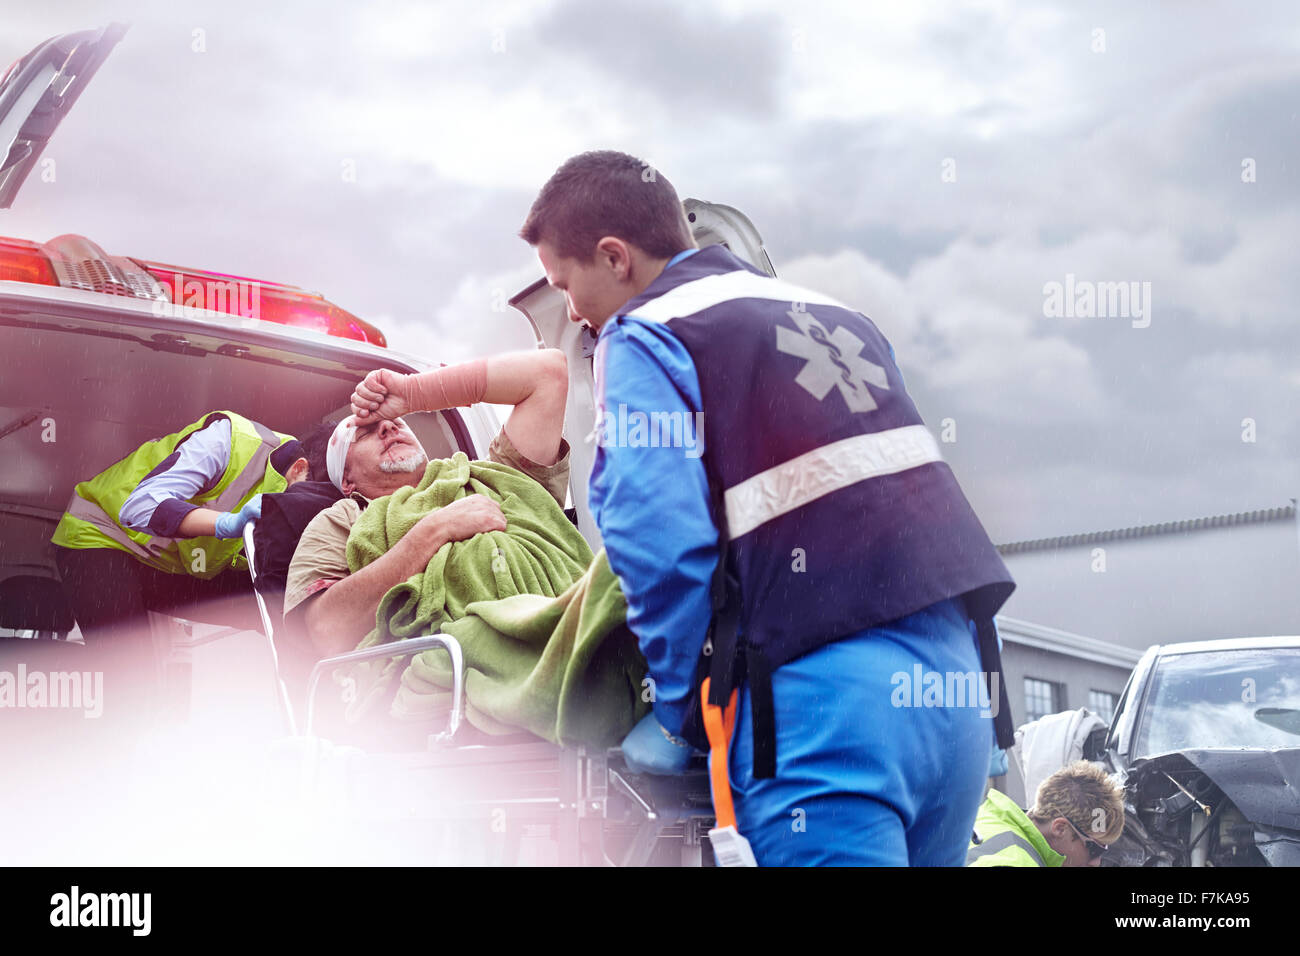 Rescue workers loading car accident victim into back of ambulance - Stock Image